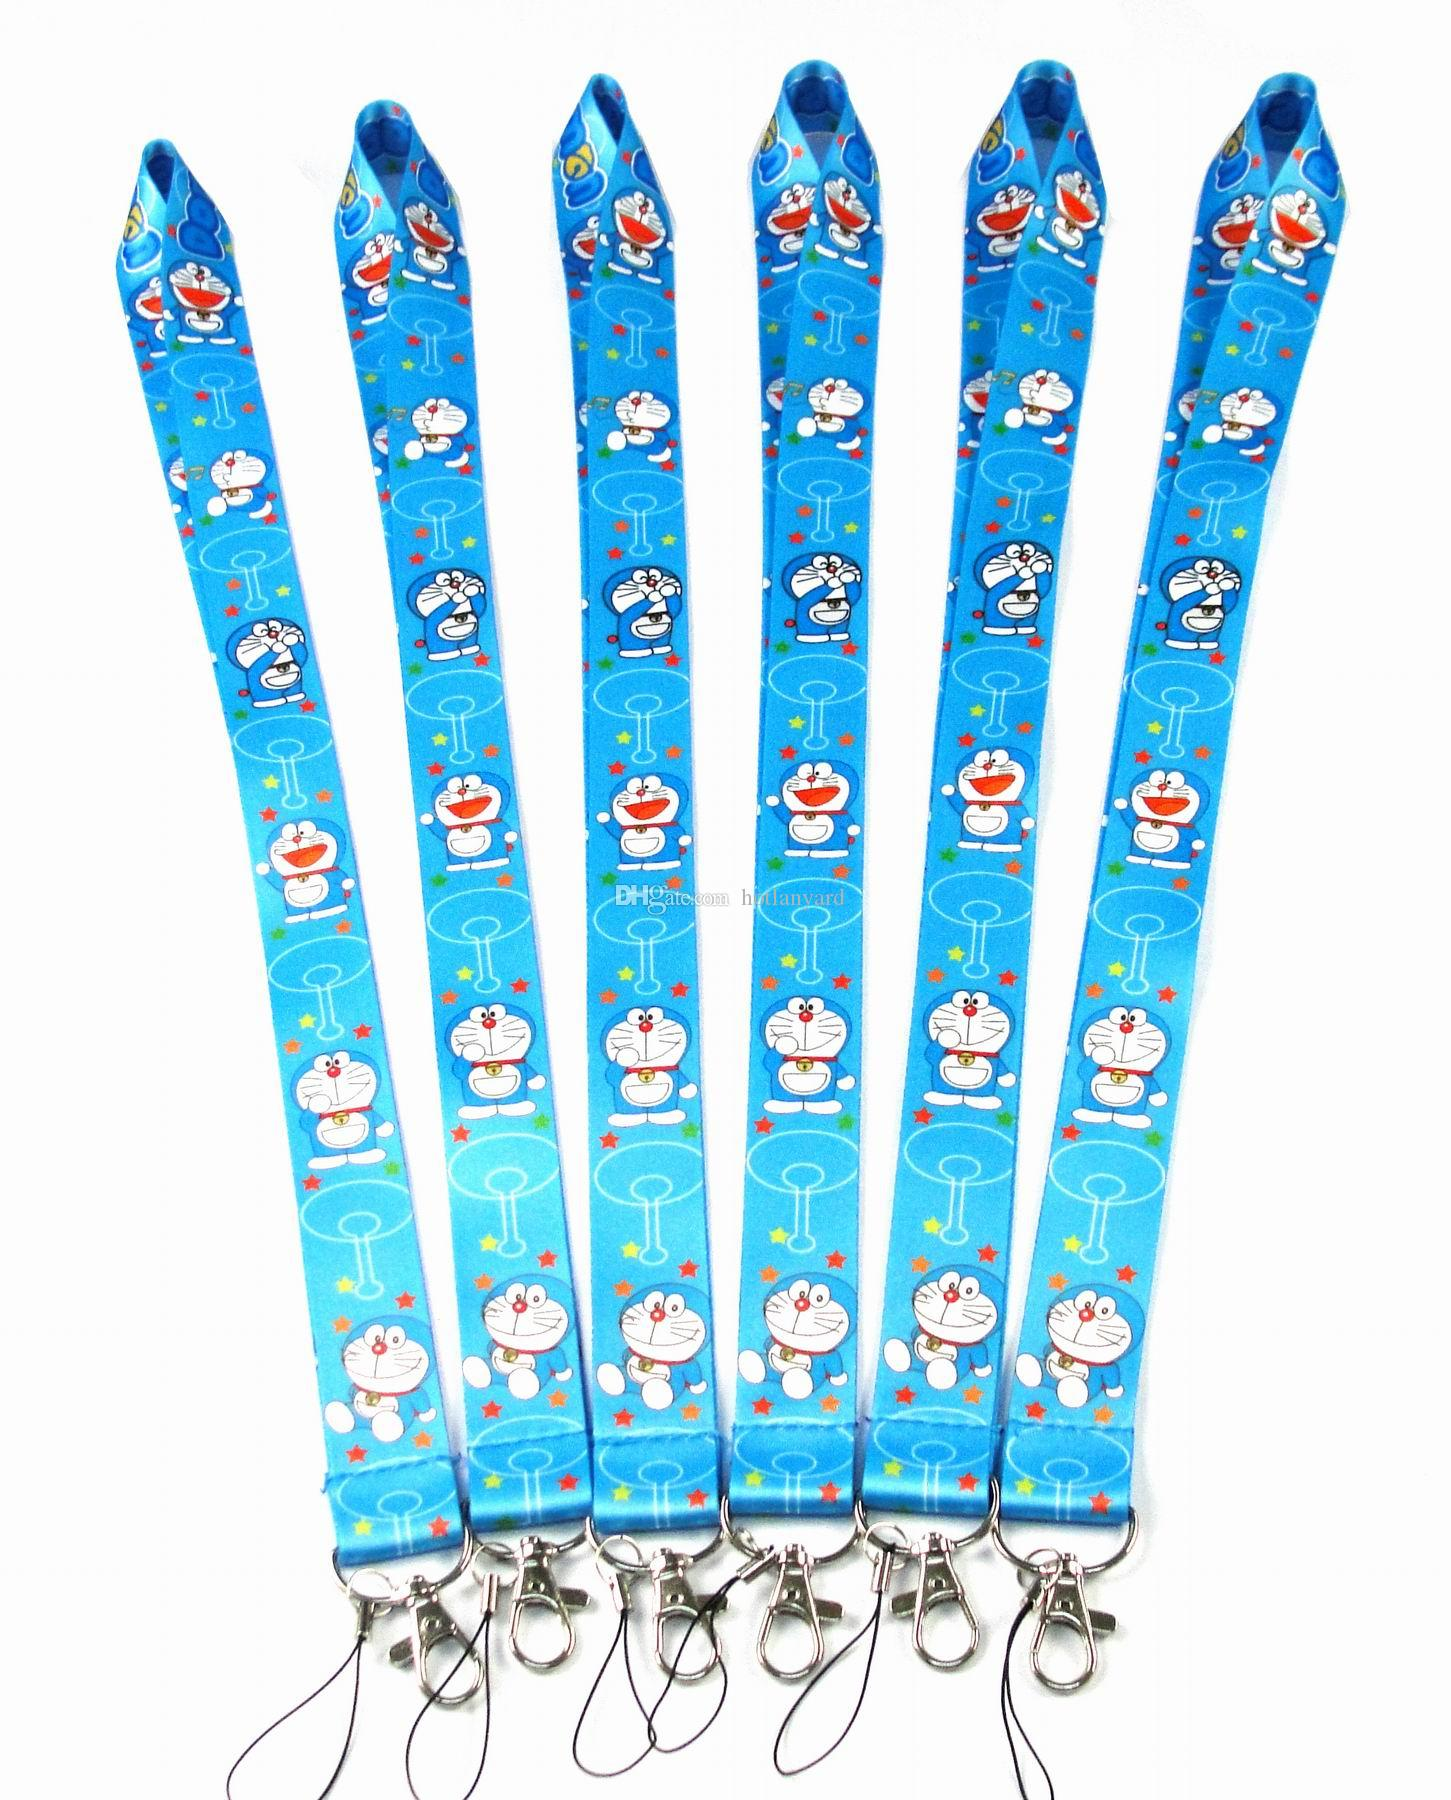 92cbb572d 2019 Blue Cell Phone Cartoon Doraemon Lanyard Key Chain Necklace String E  Cigarette Neck Strap Work ID Card Lanyard For IPhone Samsung New From  Hotlanyard, ...